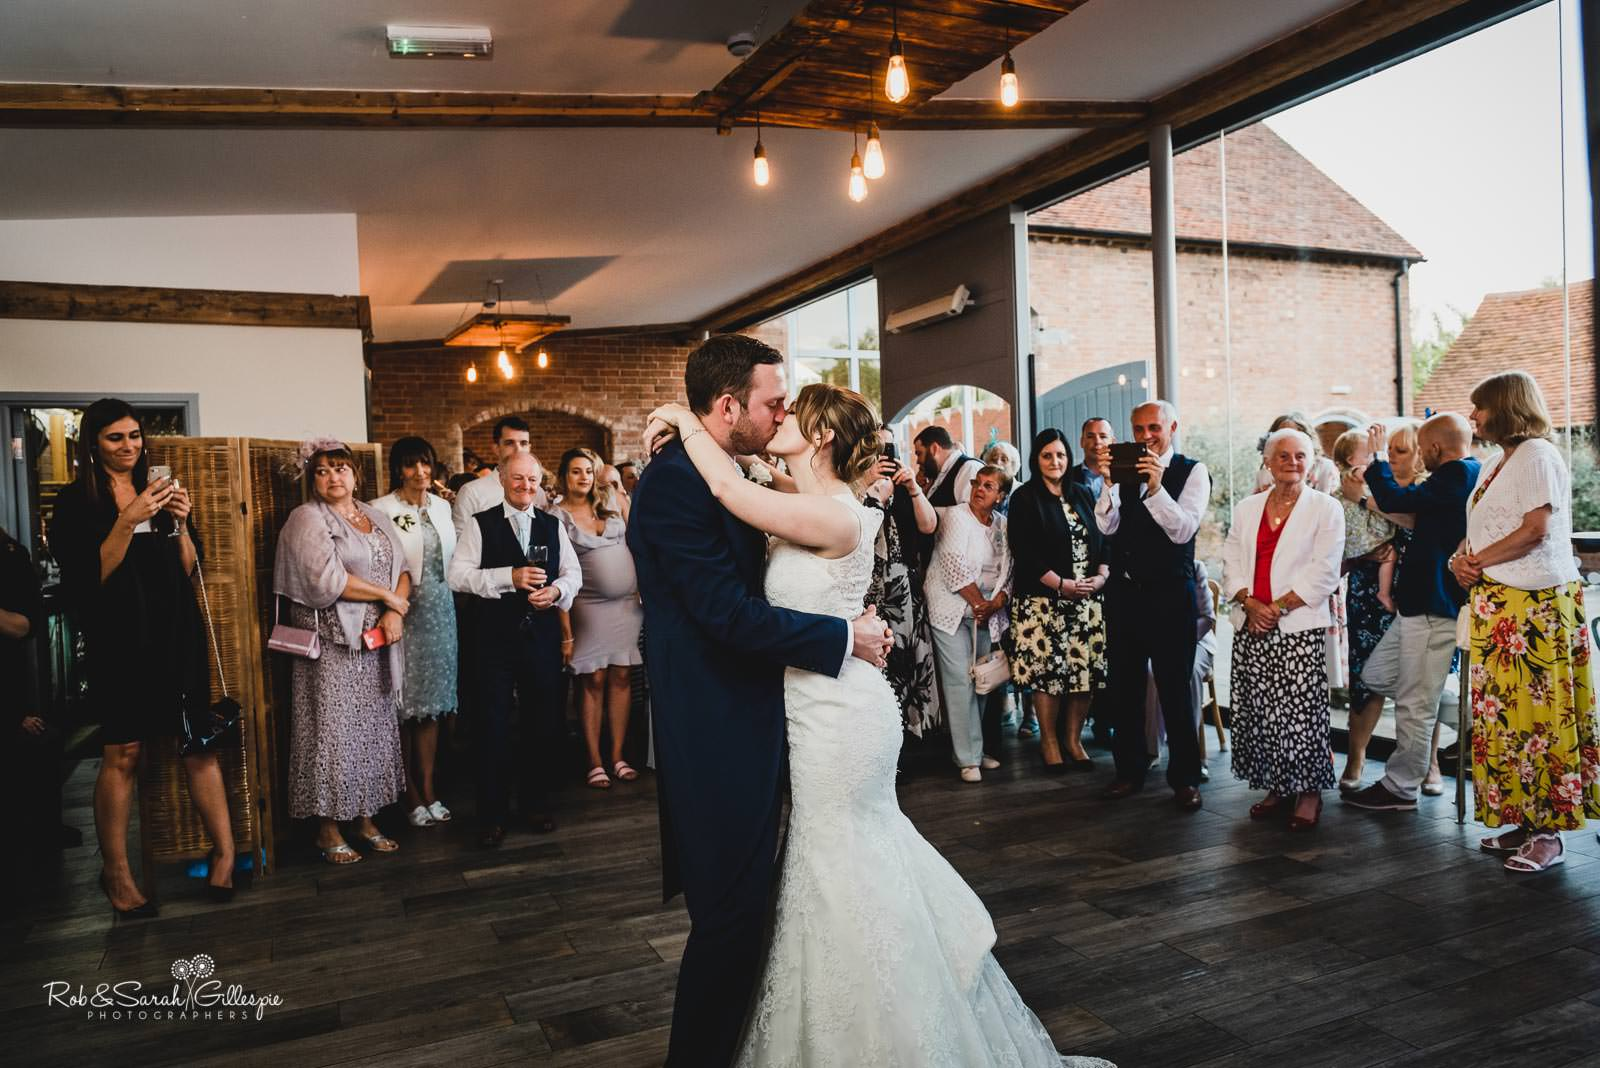 Bride and groom first dance at Swallows Nest Barn